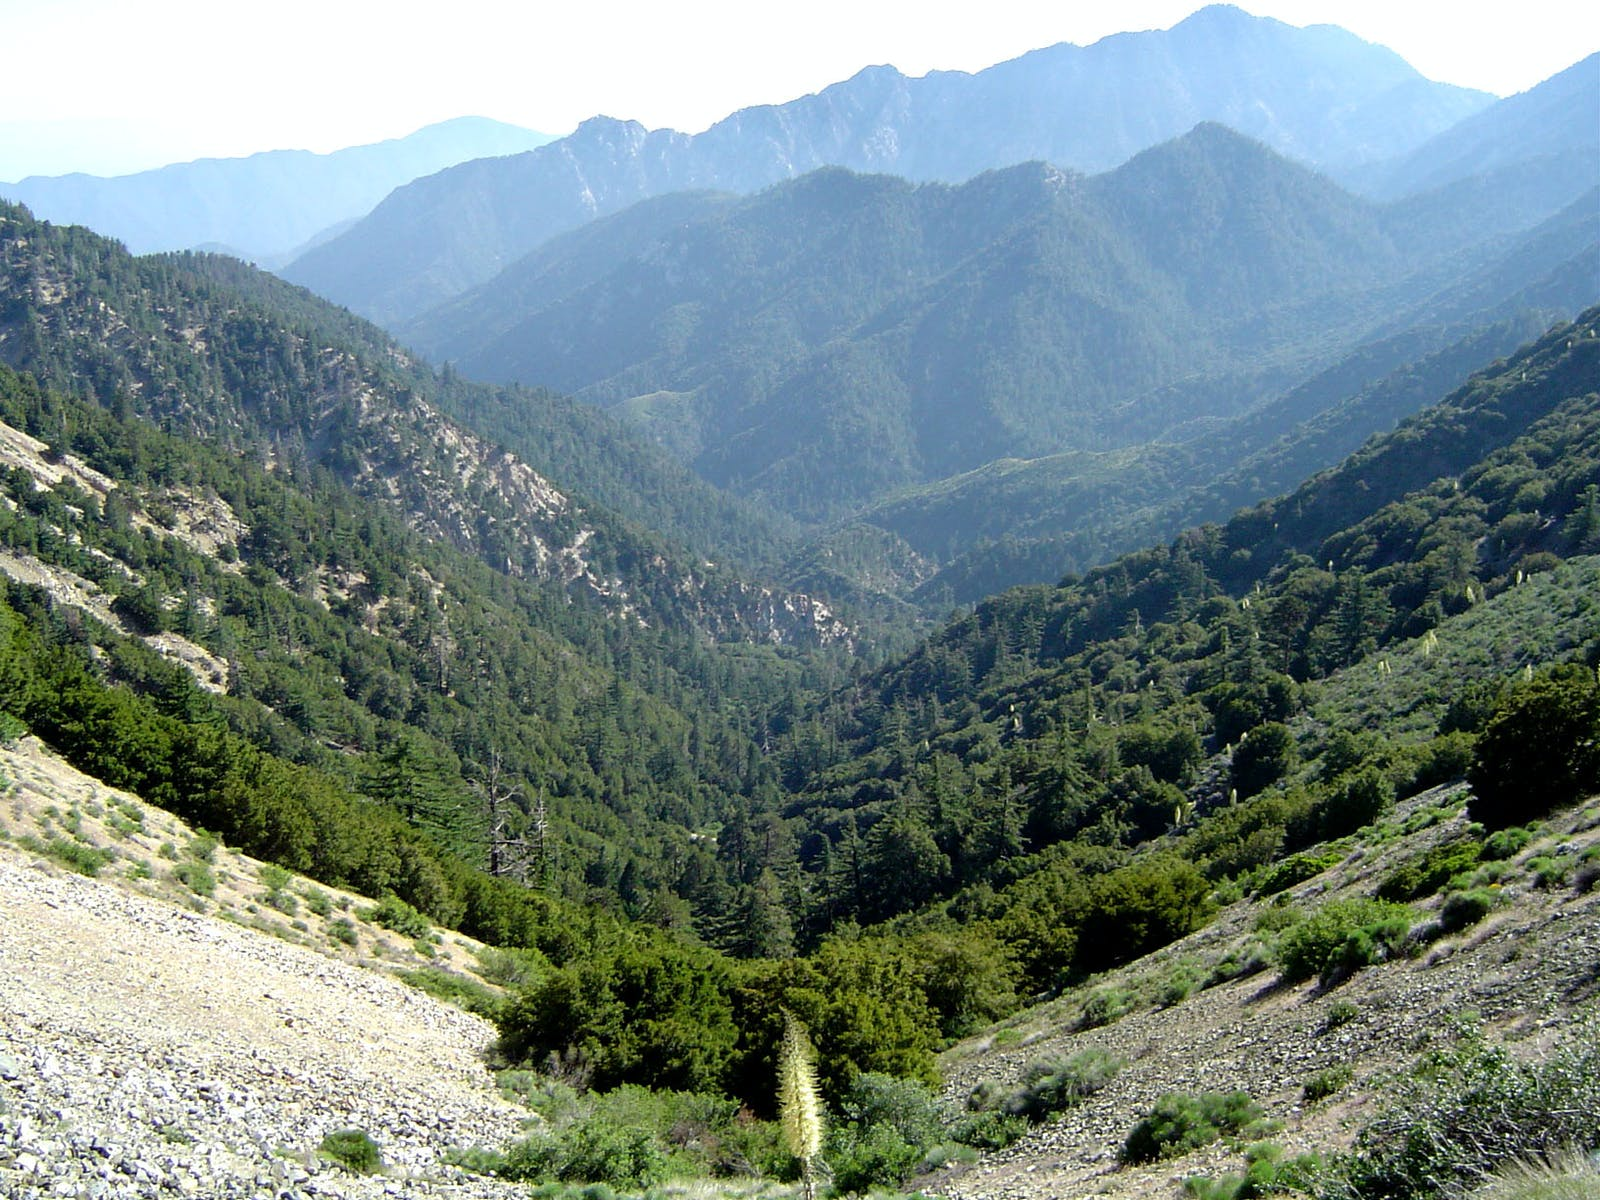 Santa Lucia Montane Chaparral and Woodlands